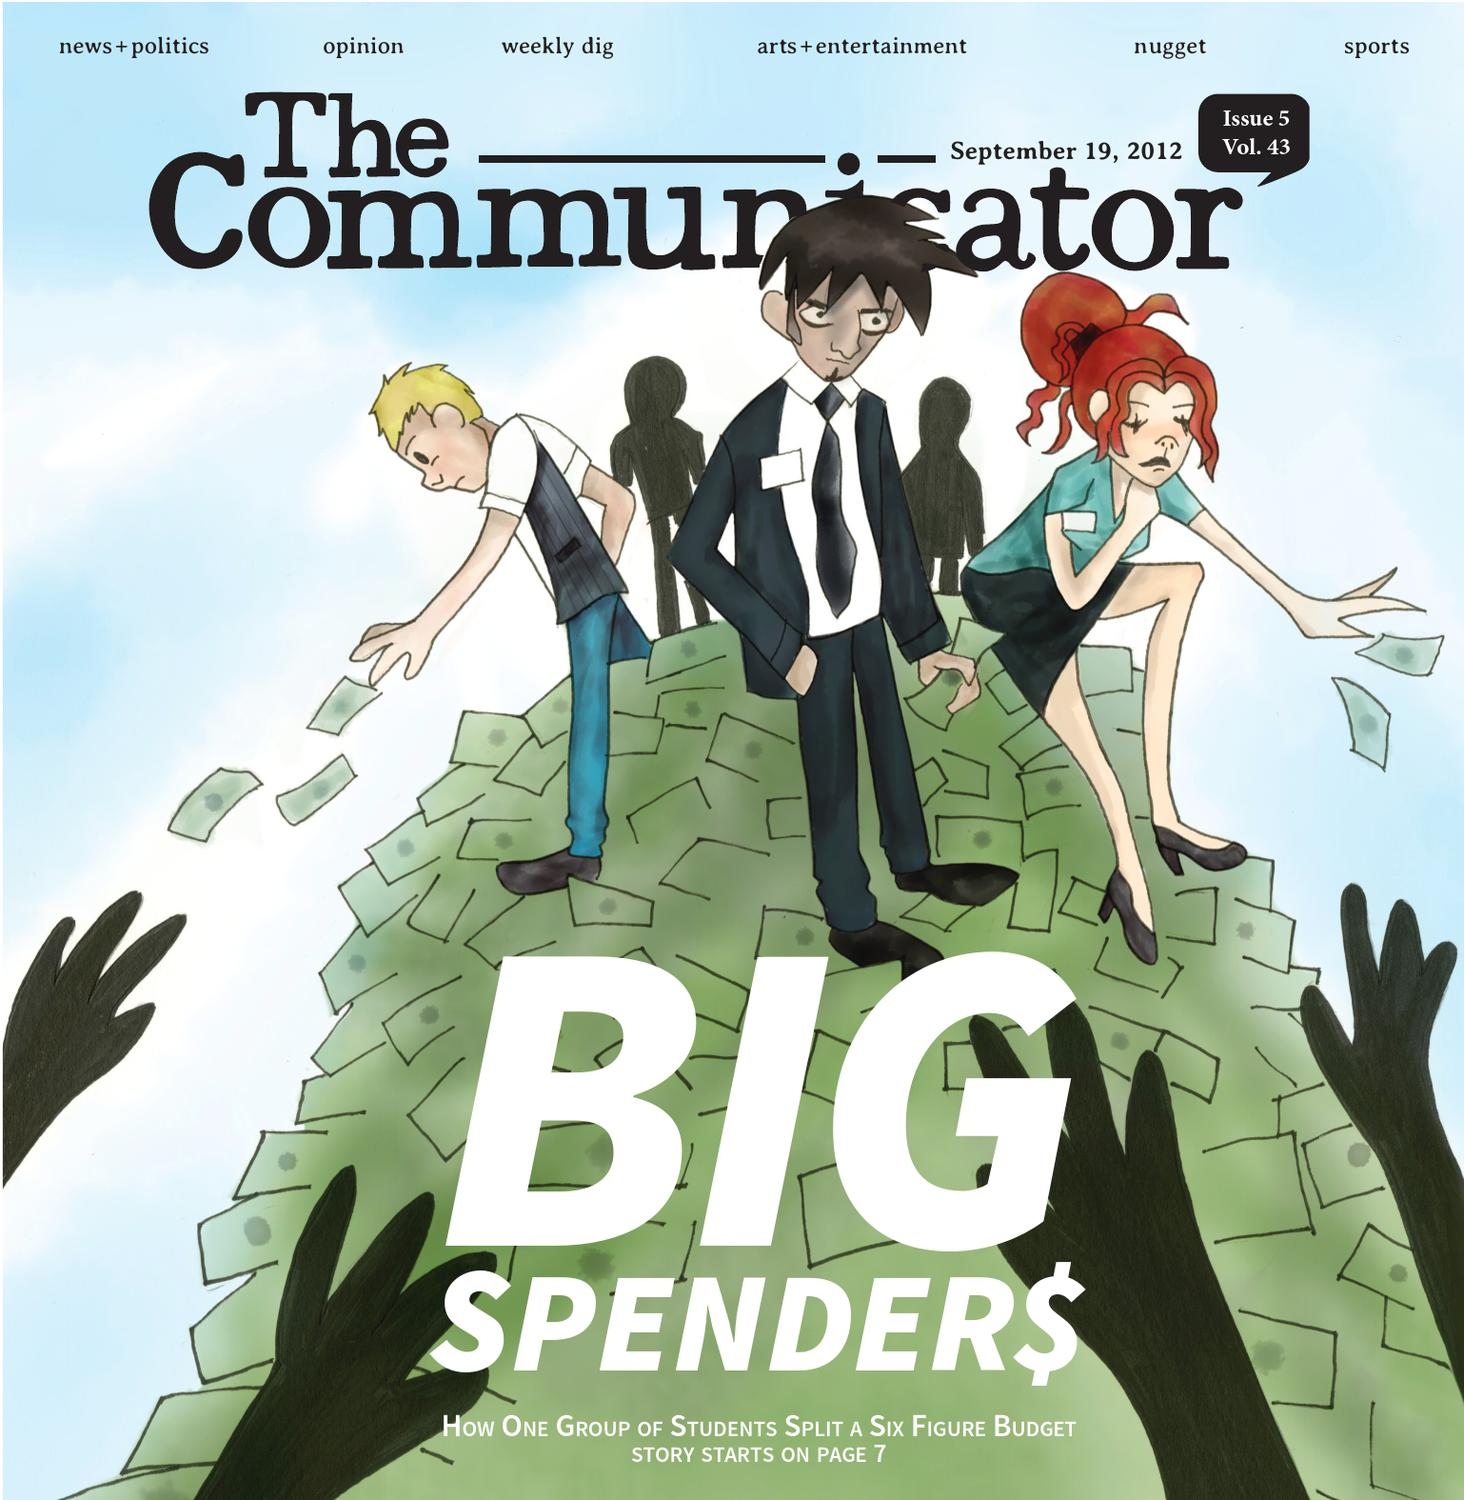 Volume 43 Issue 5 by The Communicator - issuu